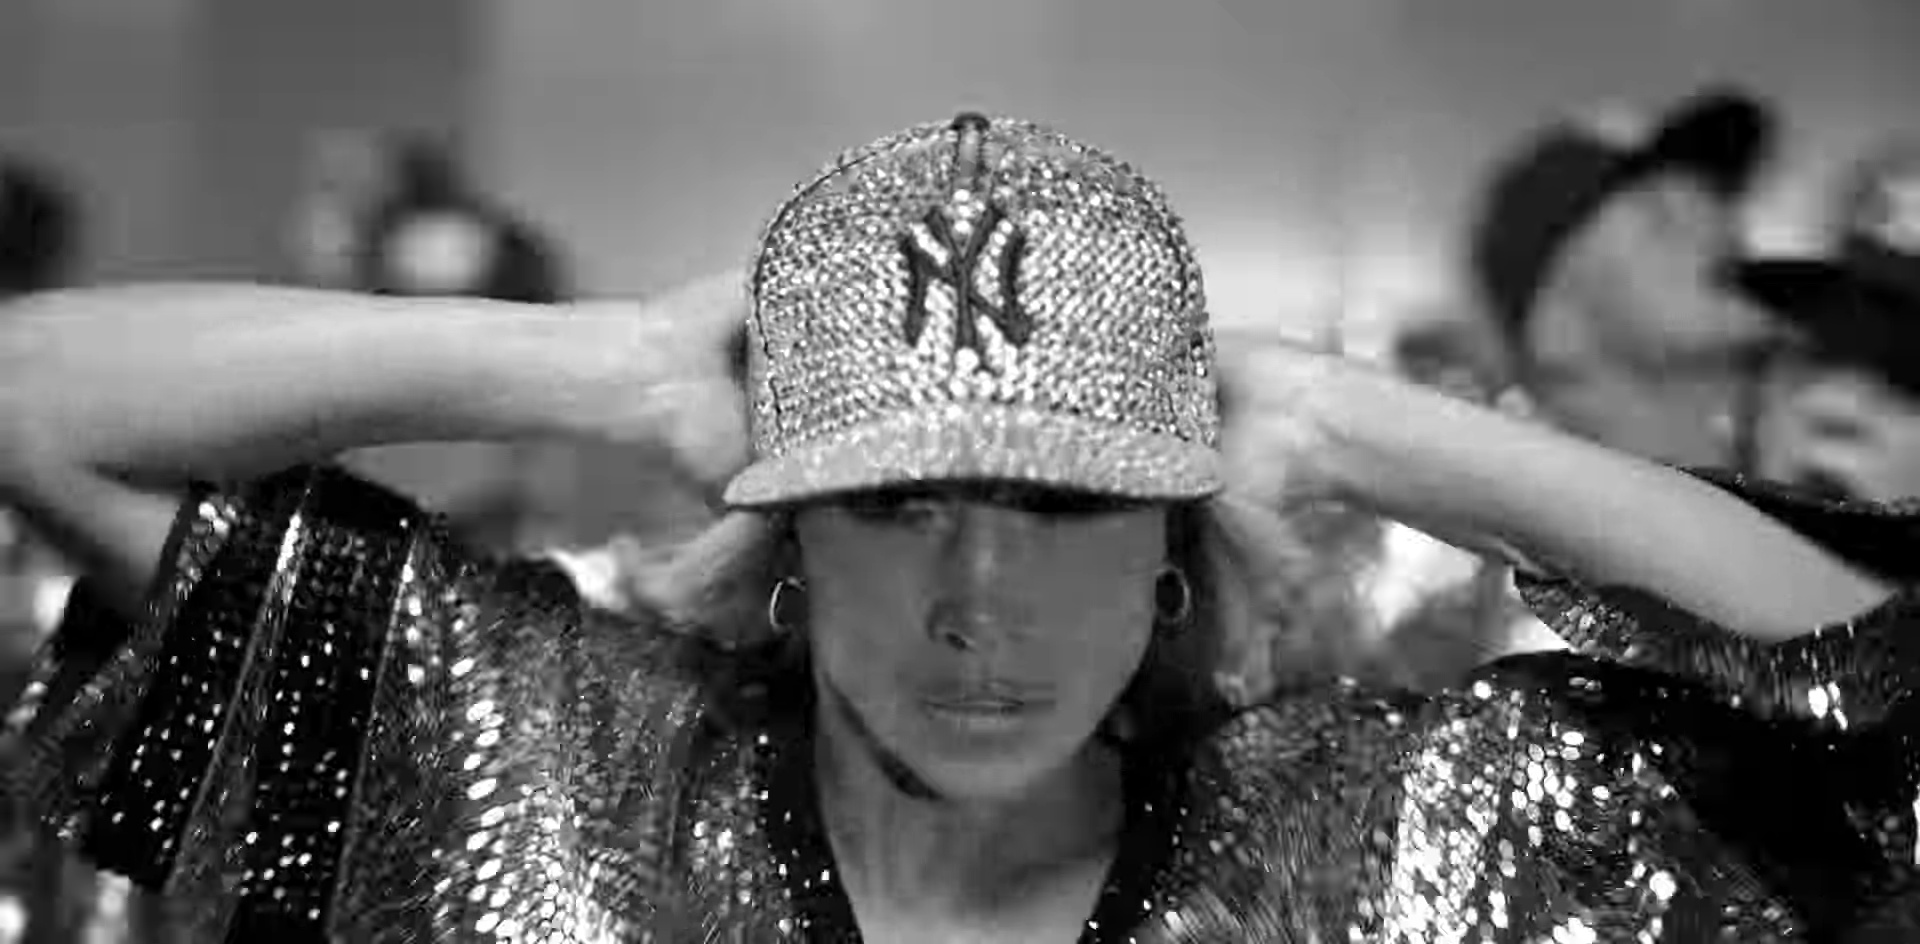 13773a970f1382 Sequin New York Yankees Cap Worn by Jennifer Lopez in Dinero ft. DJ Khaled,